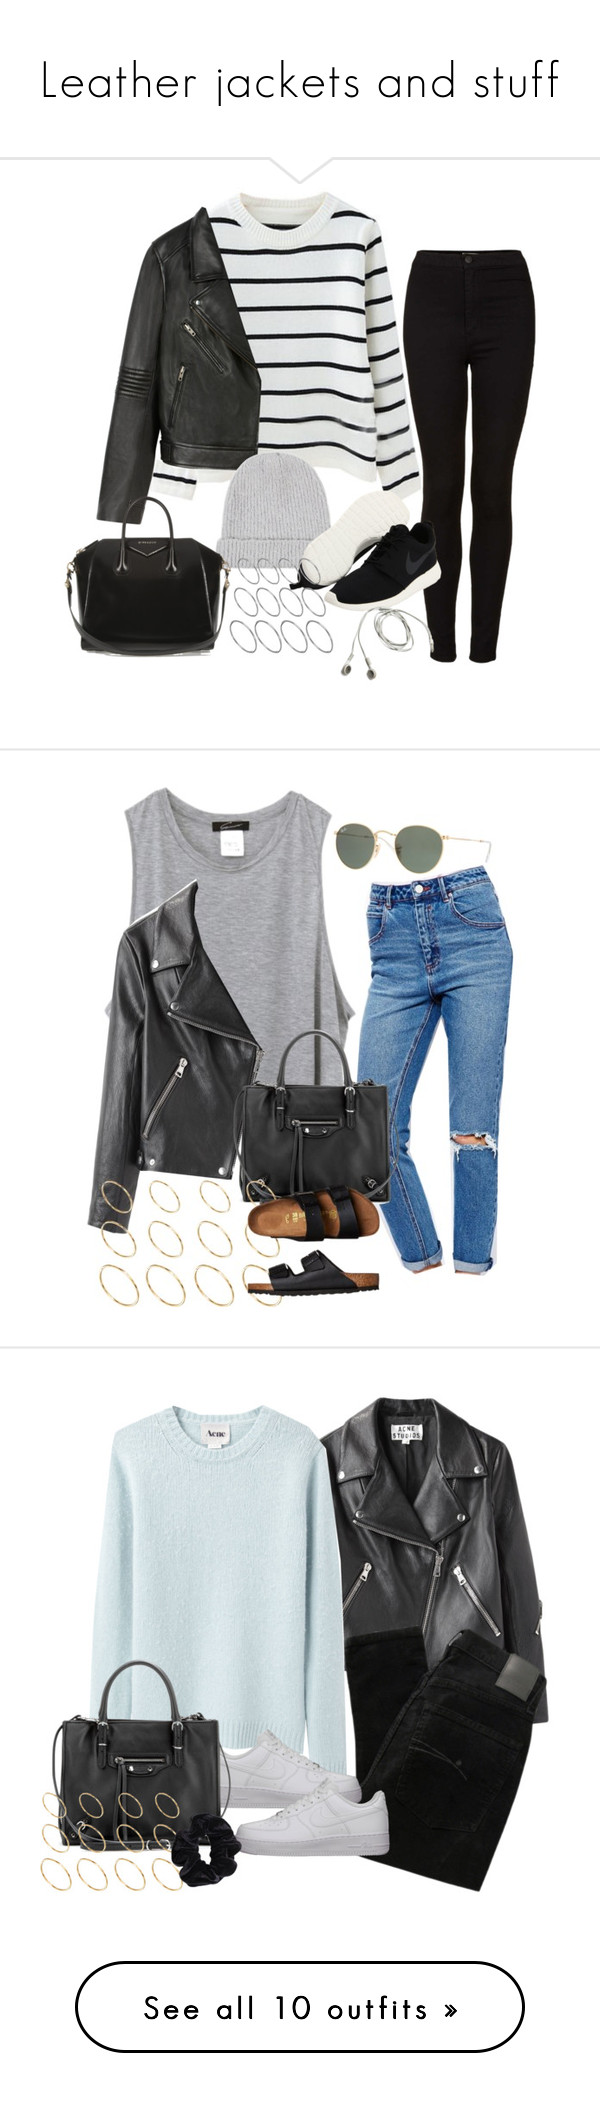 """""""Leather jackets and stuff"""" by alx97 liked on Polyvore"""